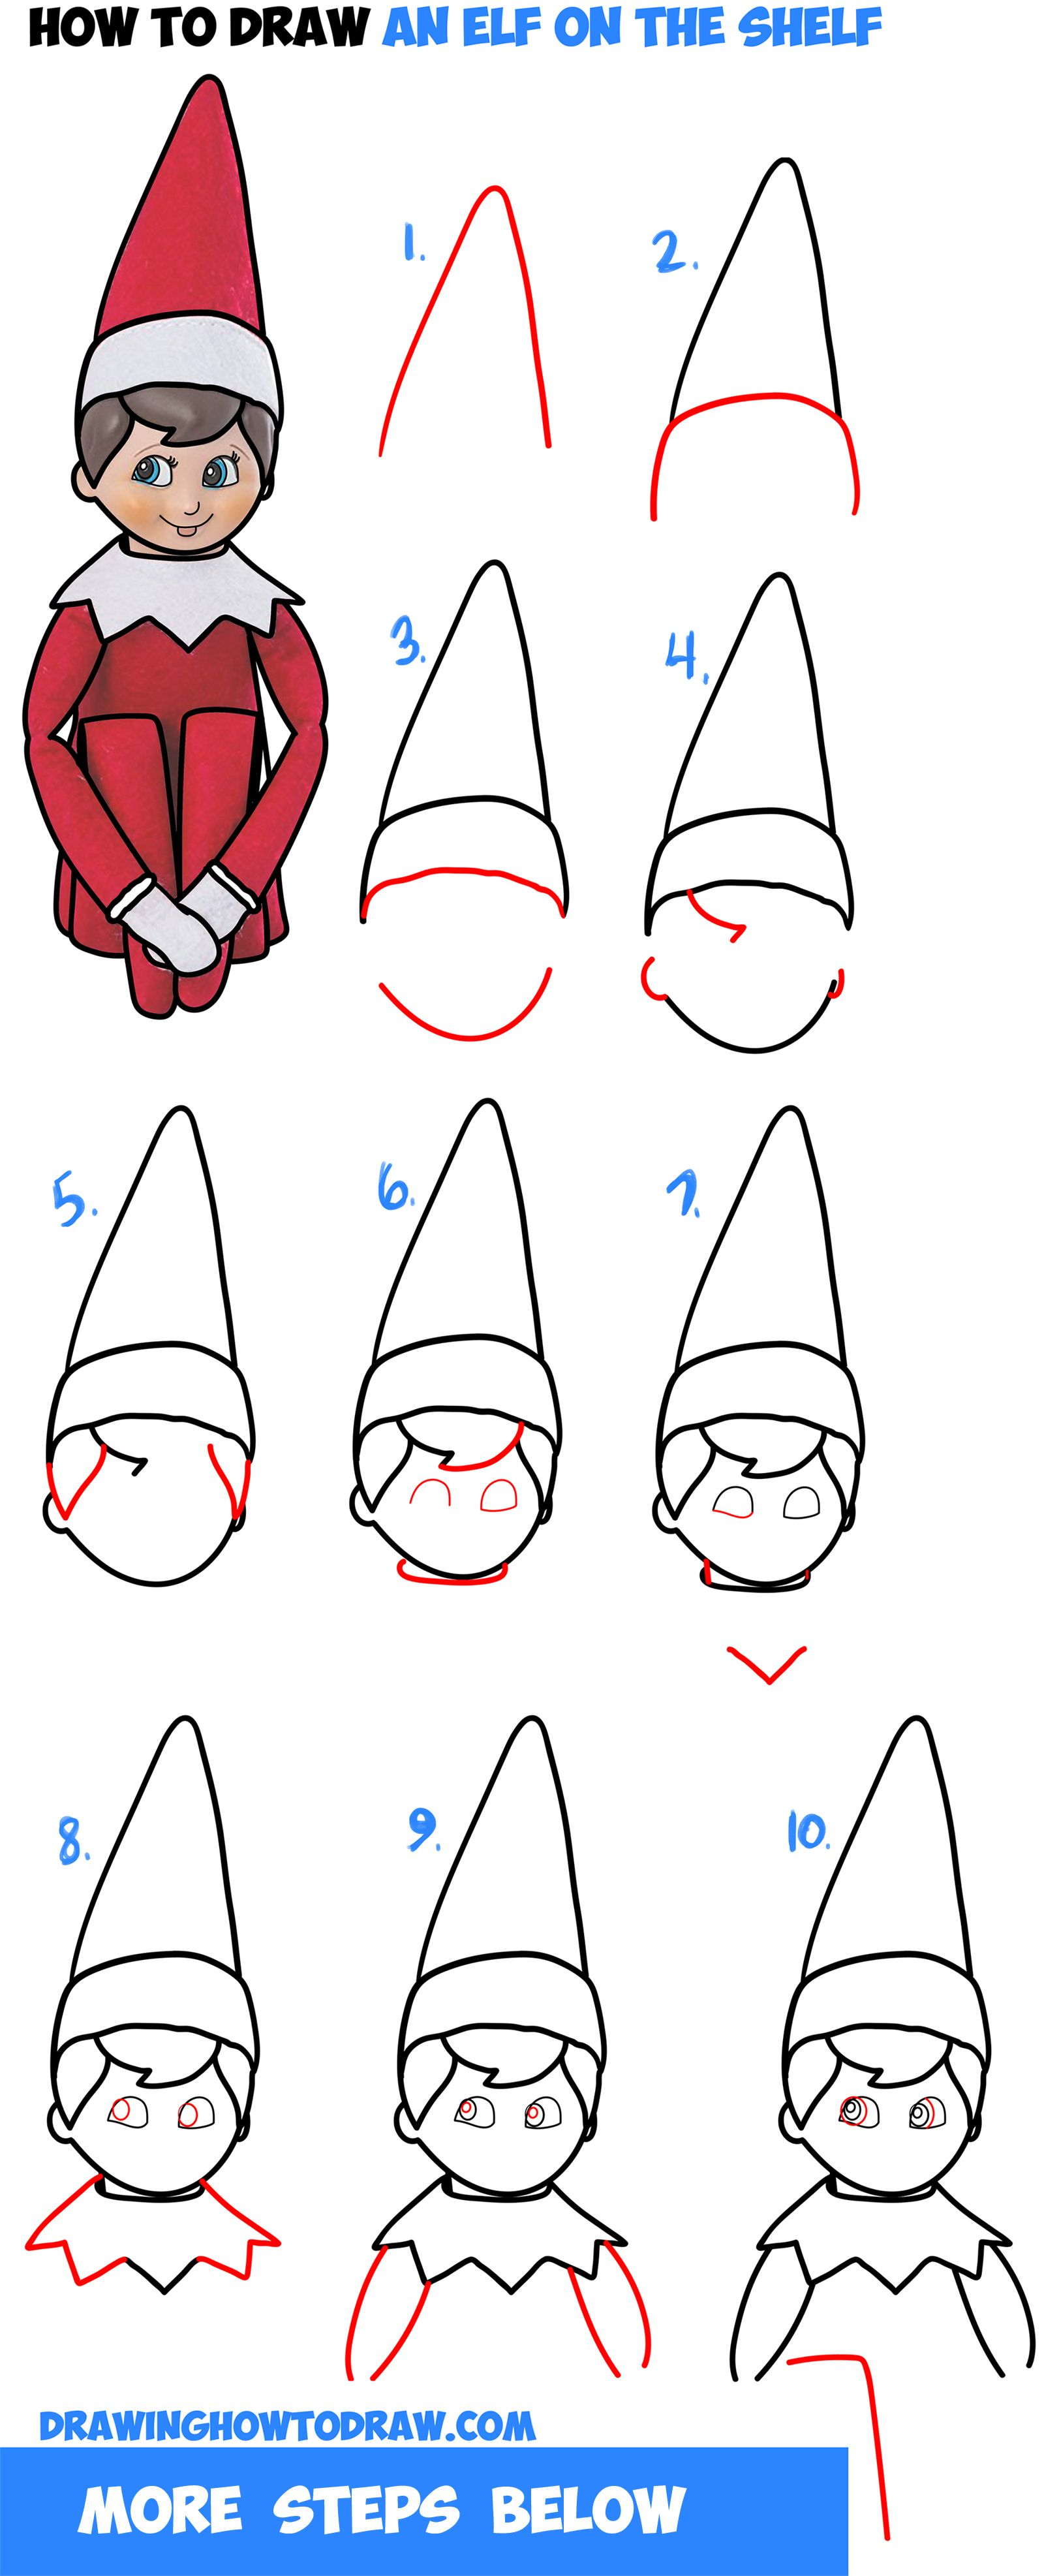 How to Draw The Elf On The Shelf Easy Step by Step Drawing